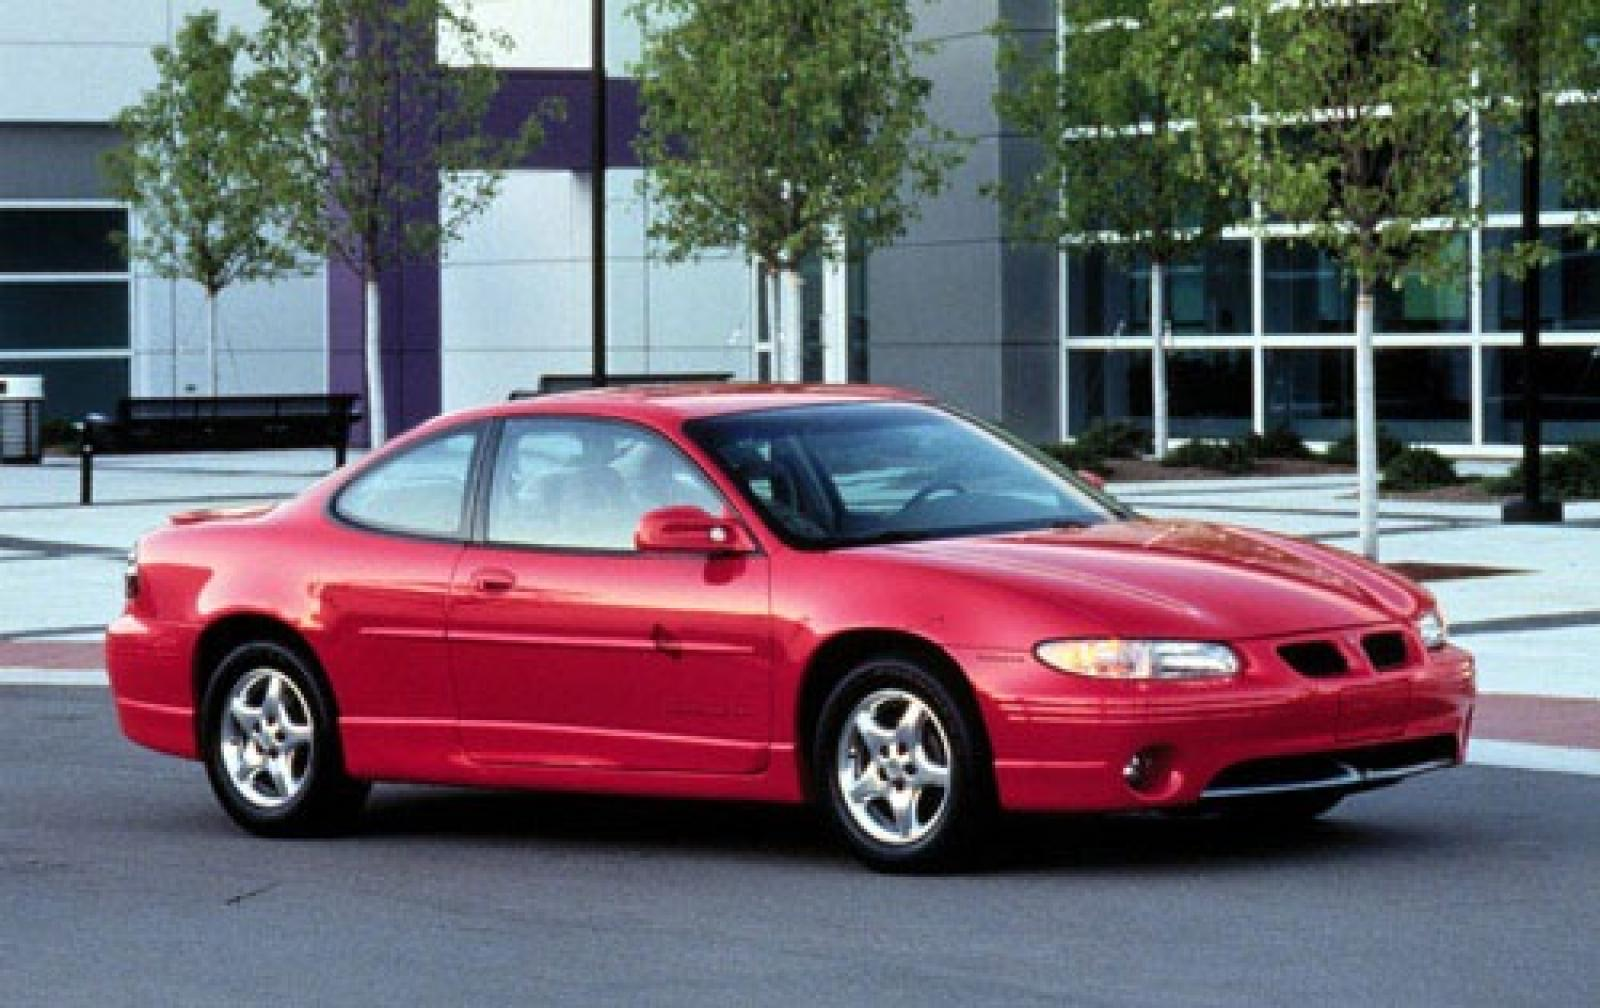 2000 pontiac grand prix information and photos zombiedrive. Black Bedroom Furniture Sets. Home Design Ideas